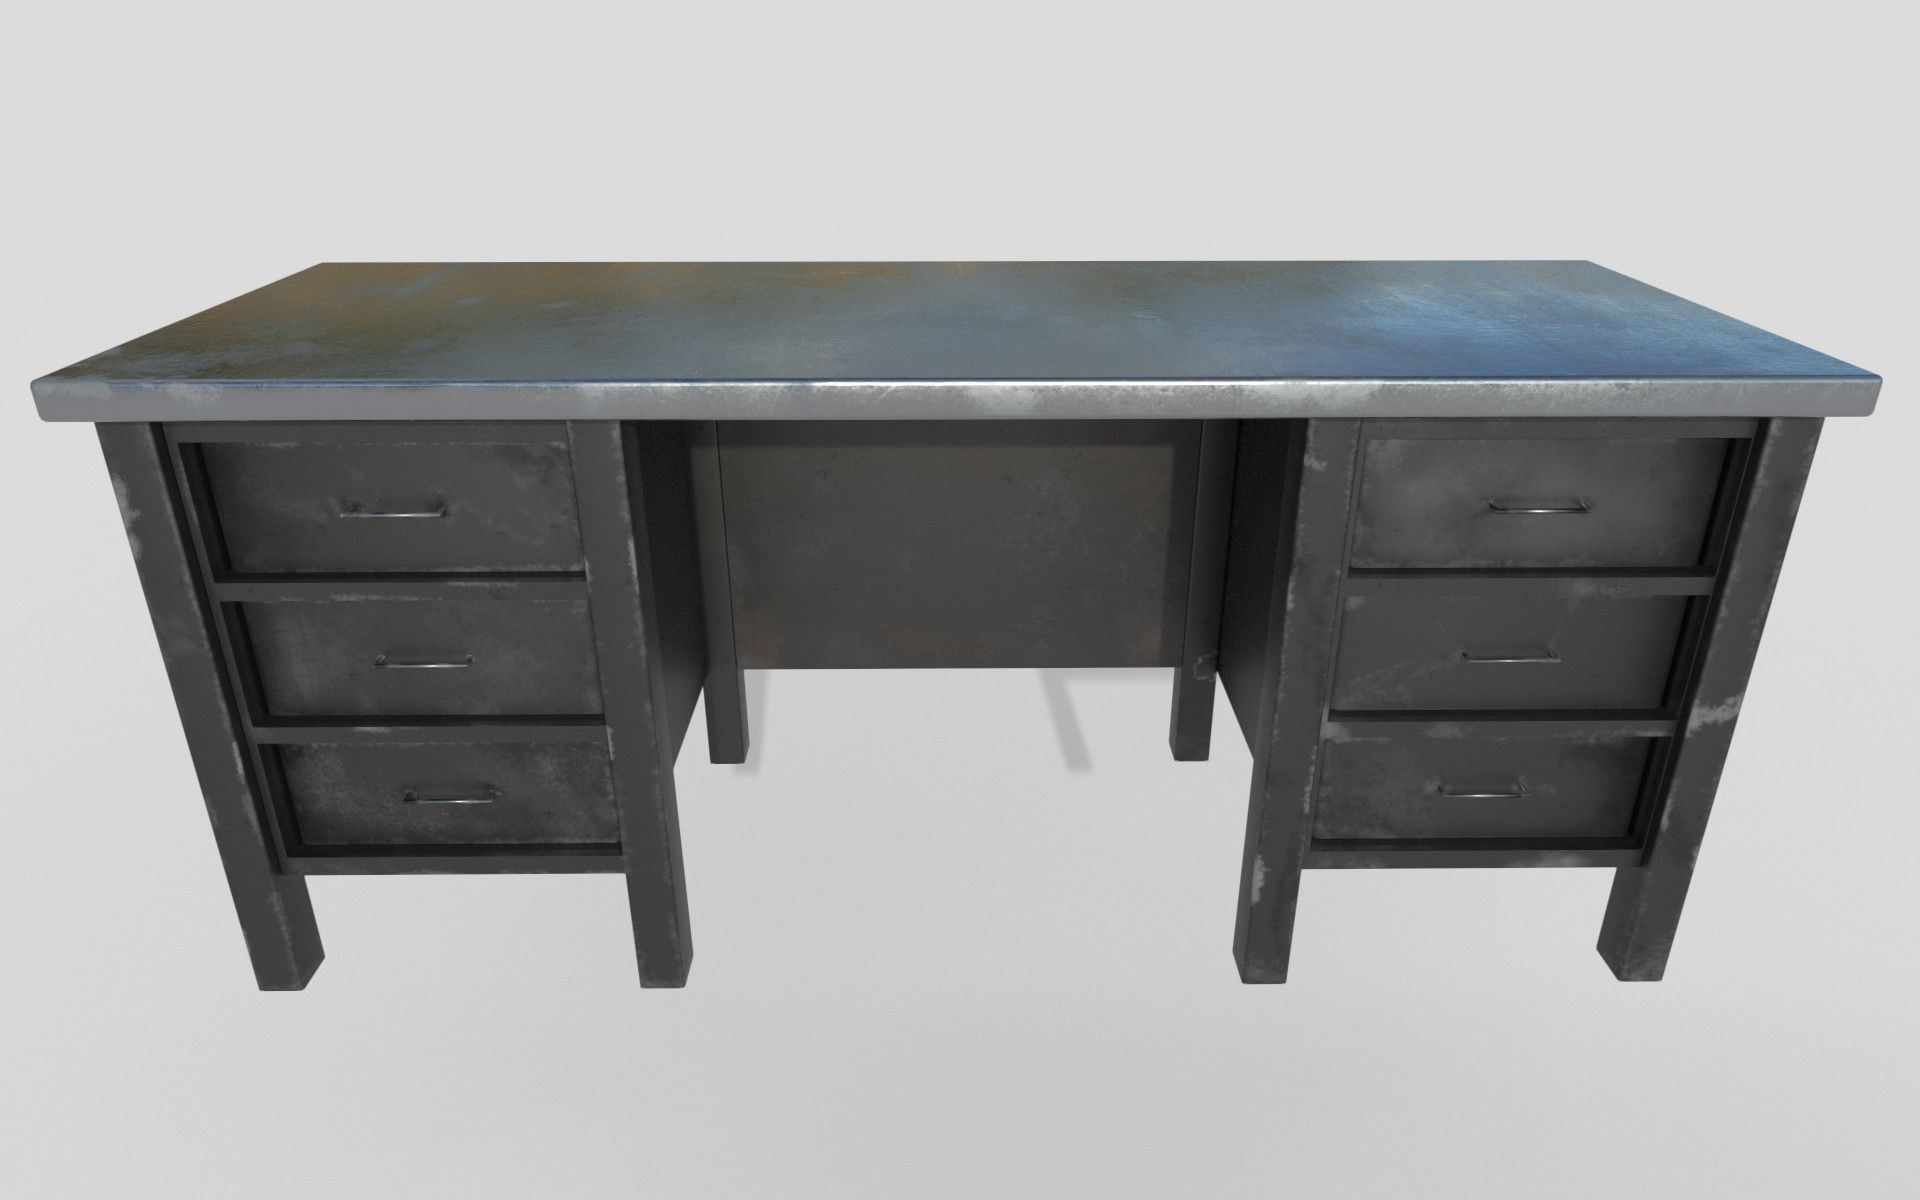 old metal desk 3d asset cgtrader rh cgtrader com old metal desk makeover old metal desk chair